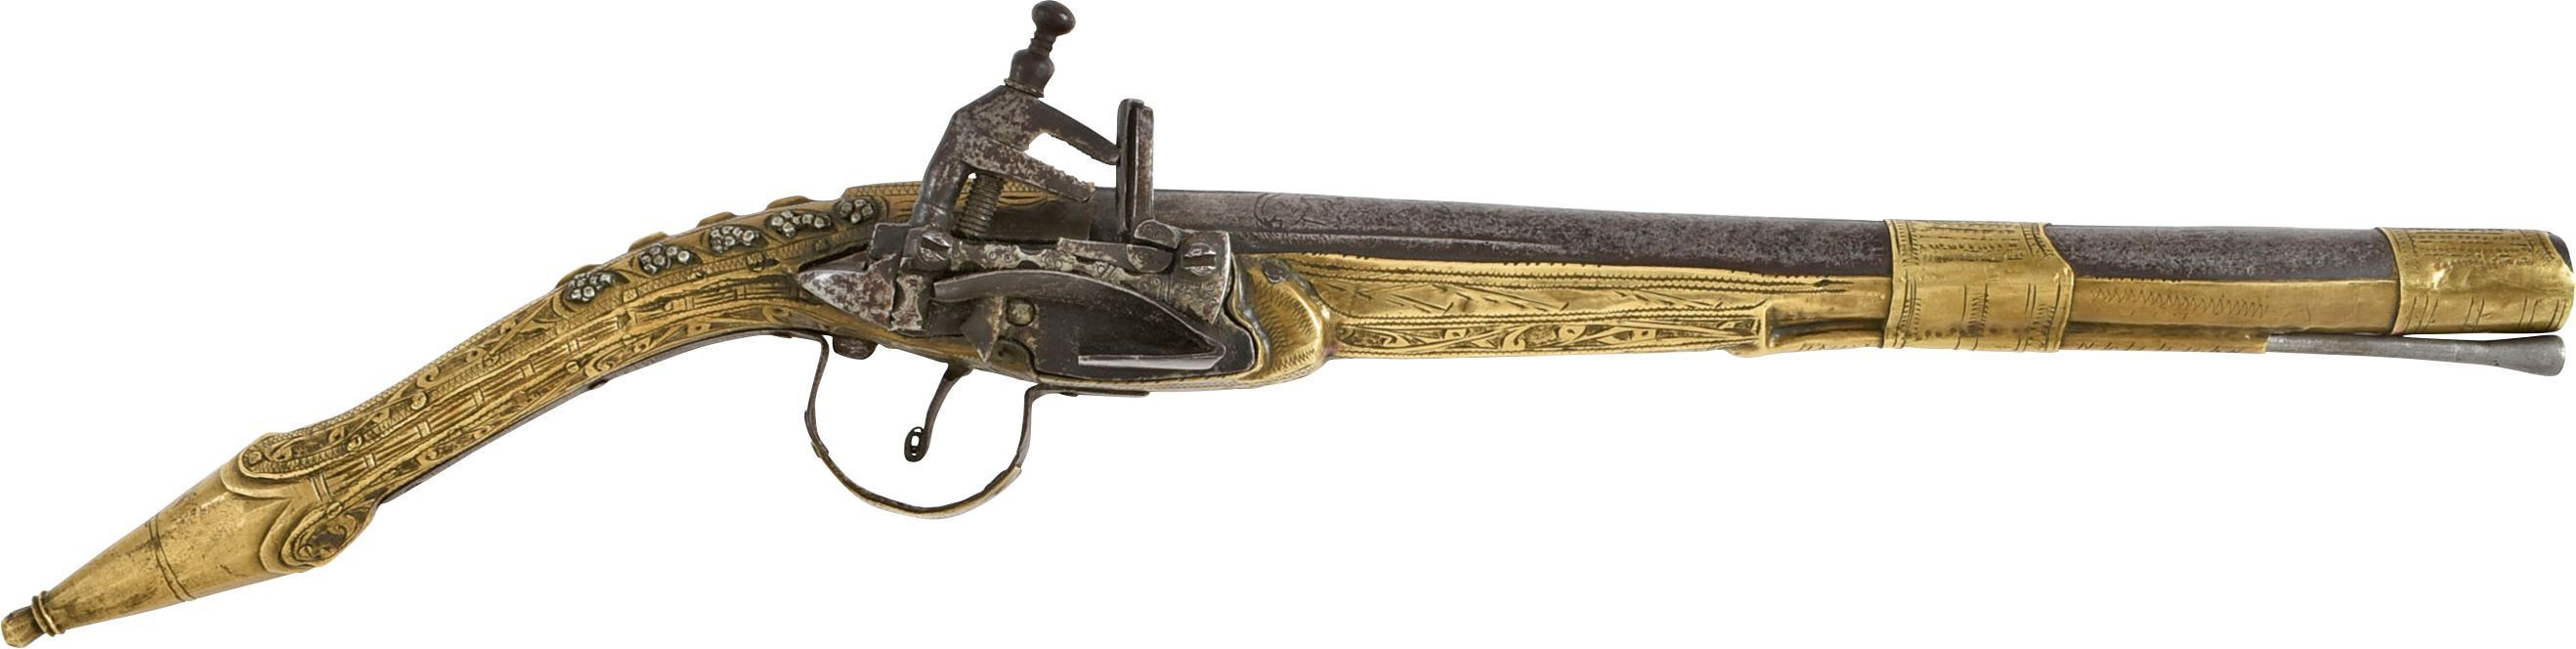 GOOD OTTOMAN (ALBANIAN) MIQUELET PISTOL C.1800-EARLY 19th CENTURY - Fagan Arms